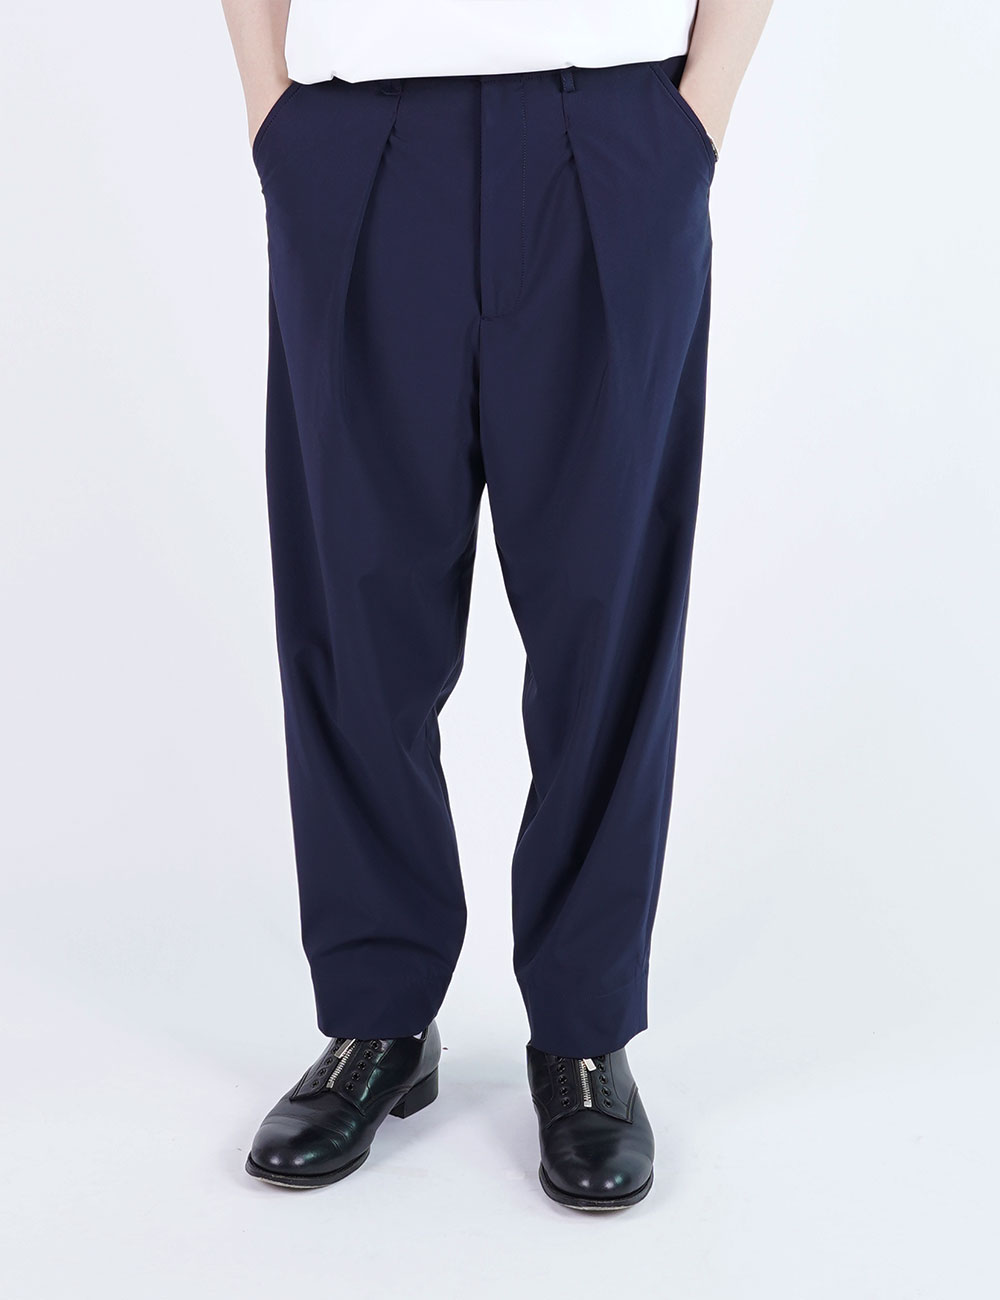 momPROUDyou : NARROW PANTS (NAVY)